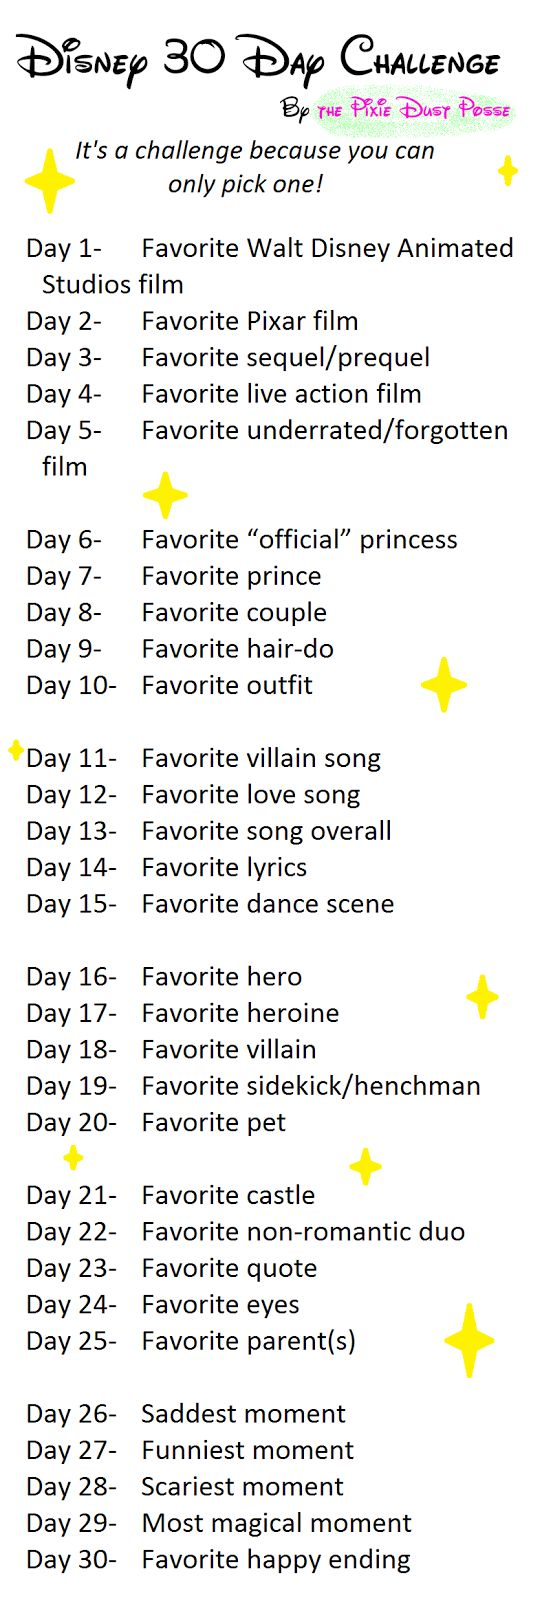 Disney 30 Day Challenge- Ok so I'm redoing the challenge again! And I'm actually going to stick to it this time! Ended up picking this one